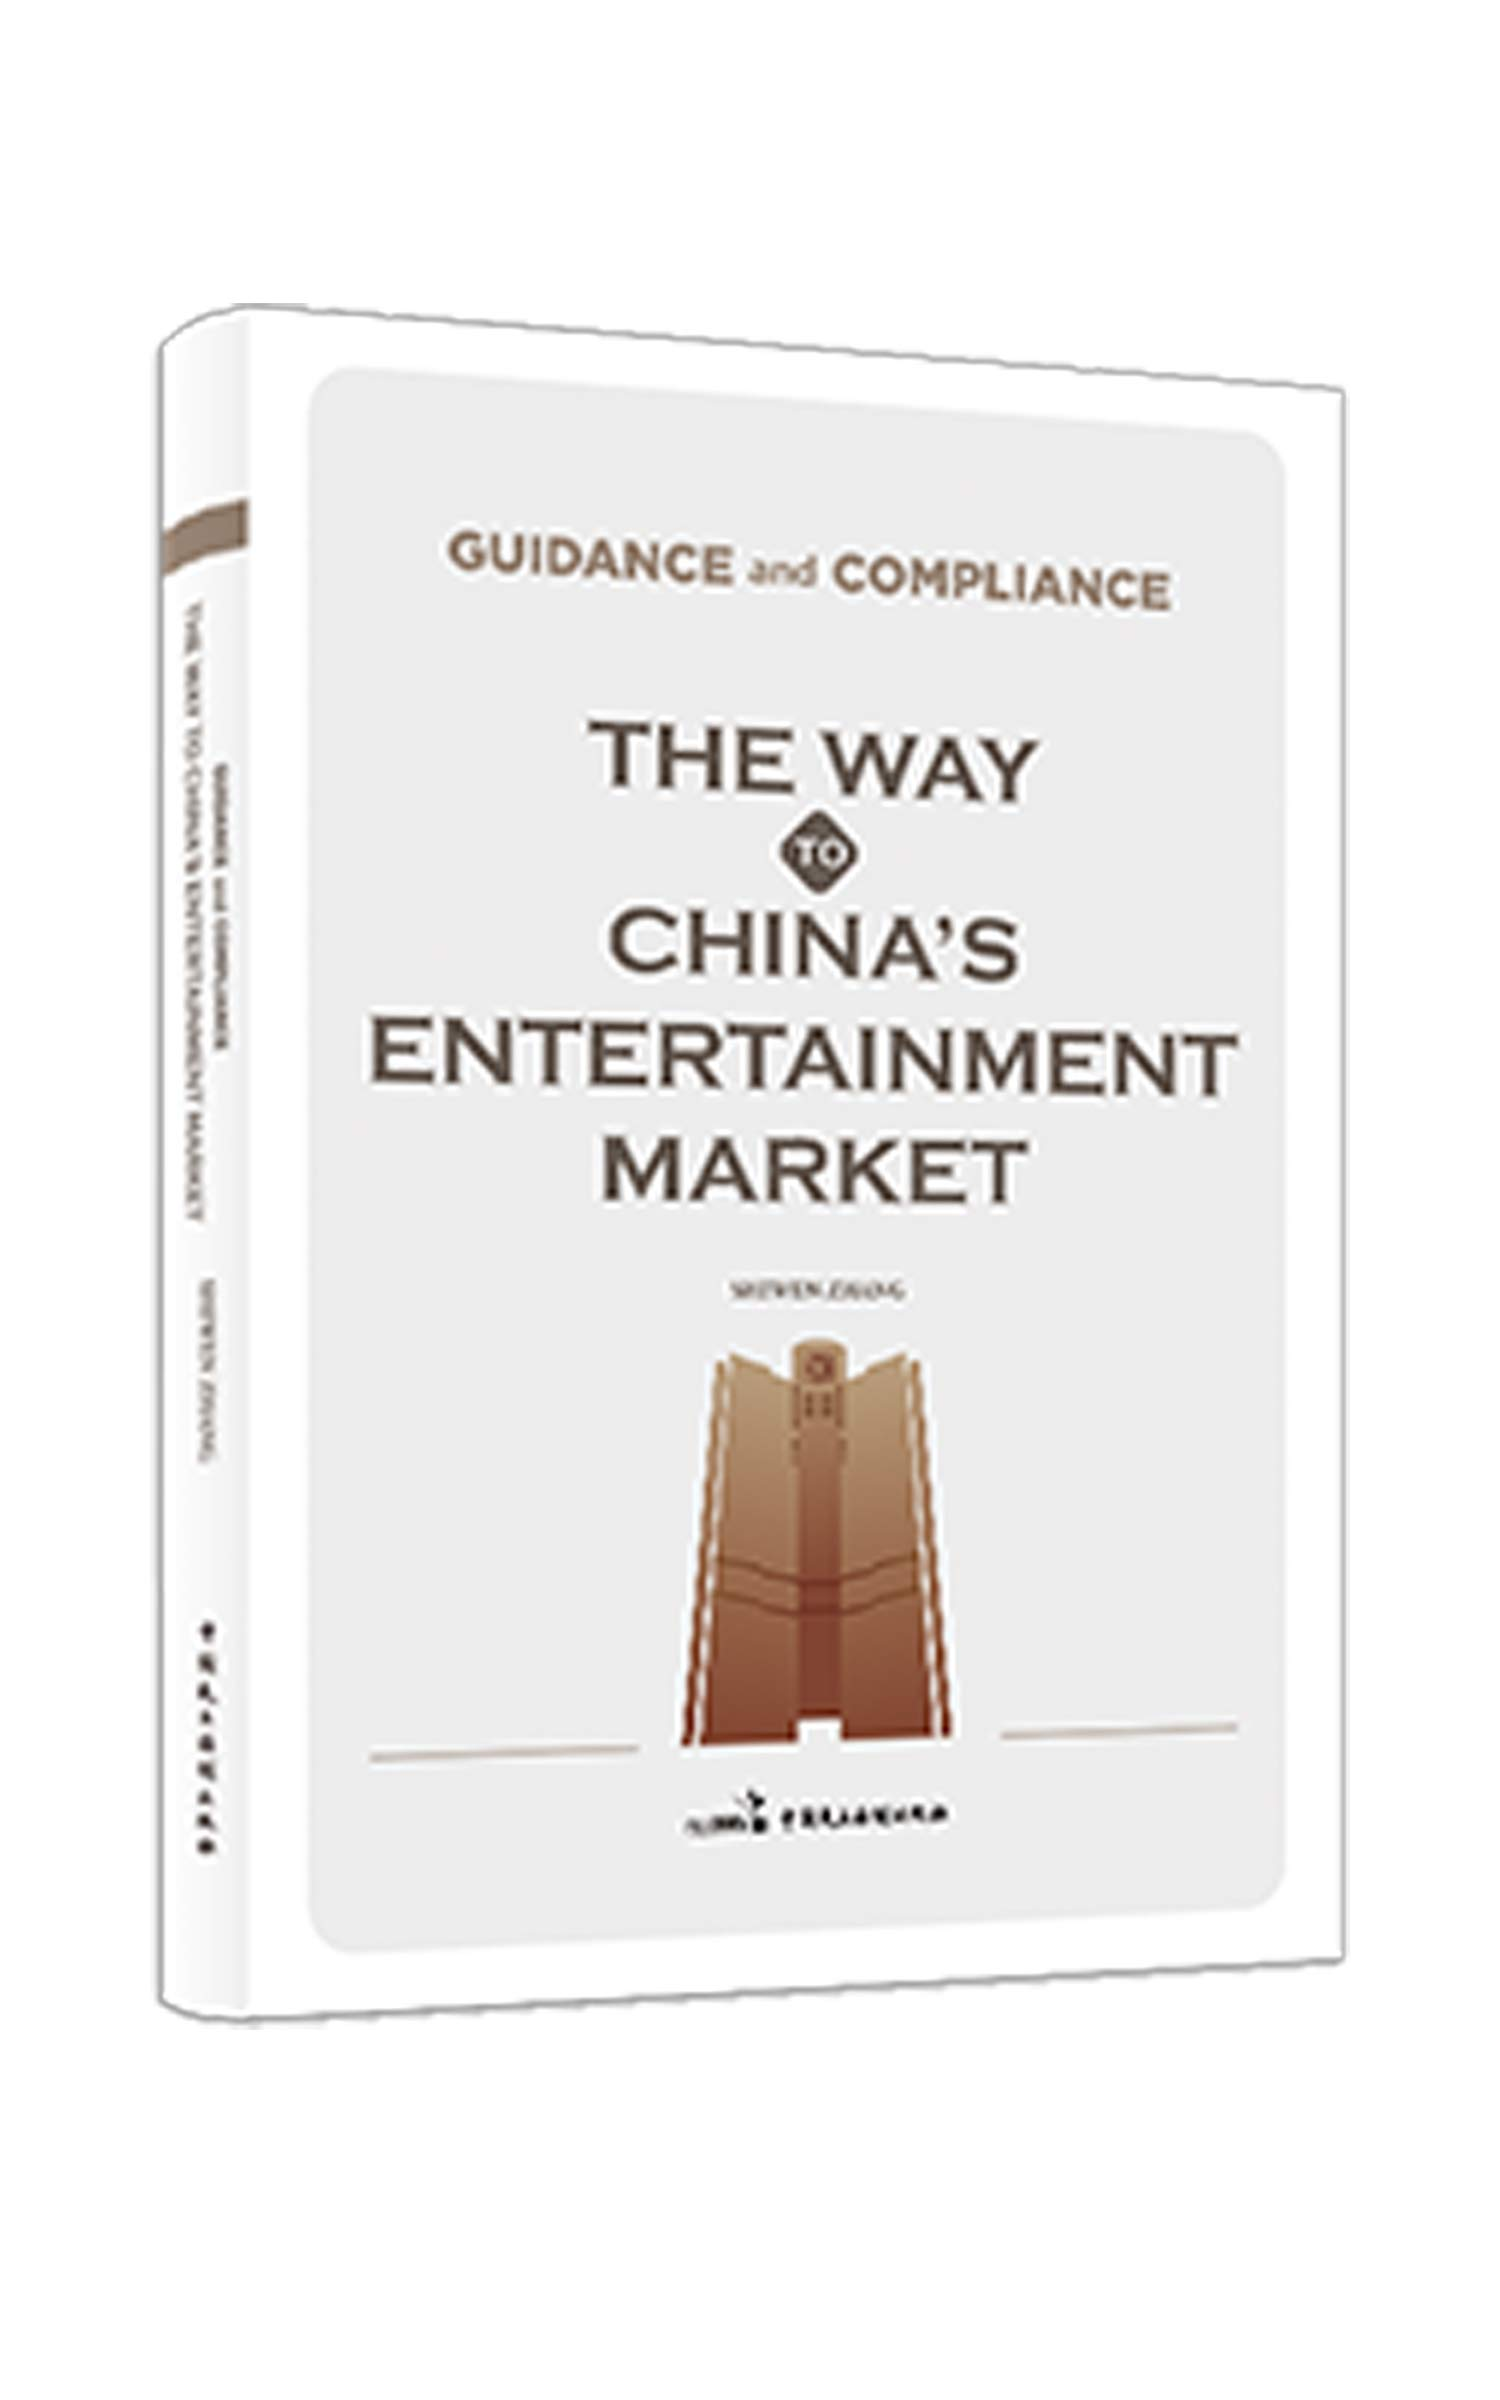 Guidance and Compliance: The Way To China's Entertainment Market